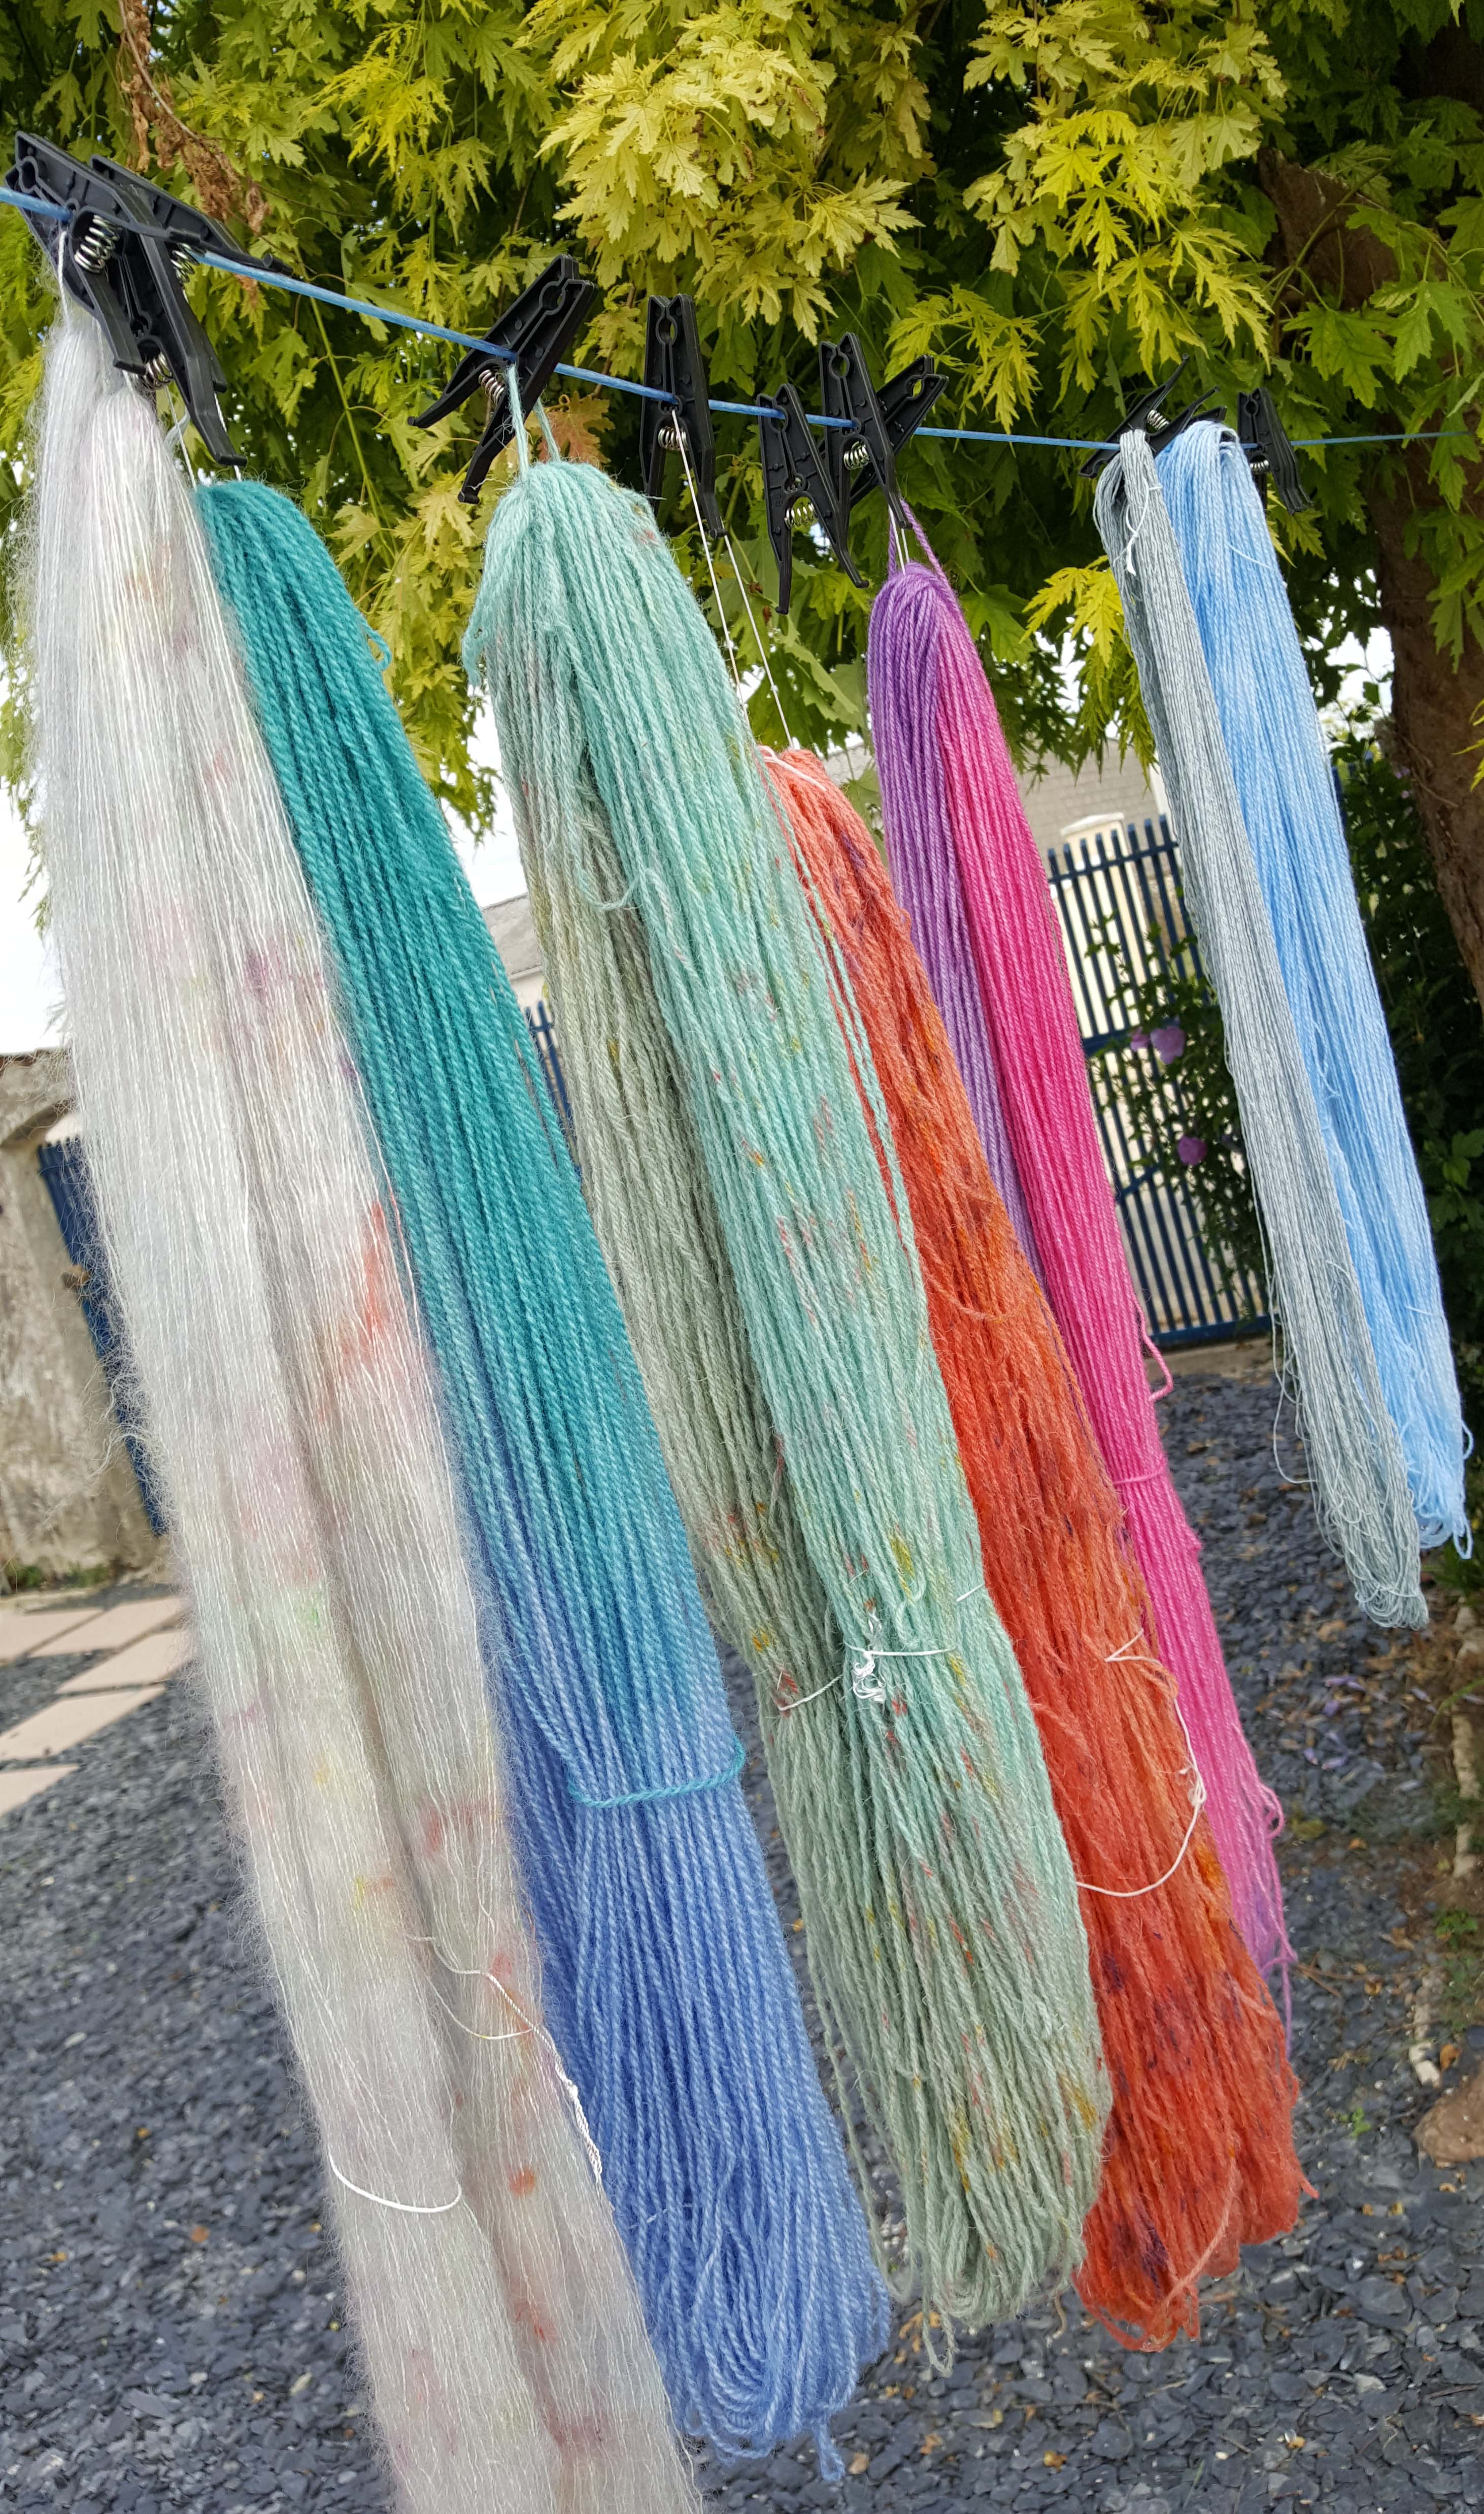 Yarn dyeing